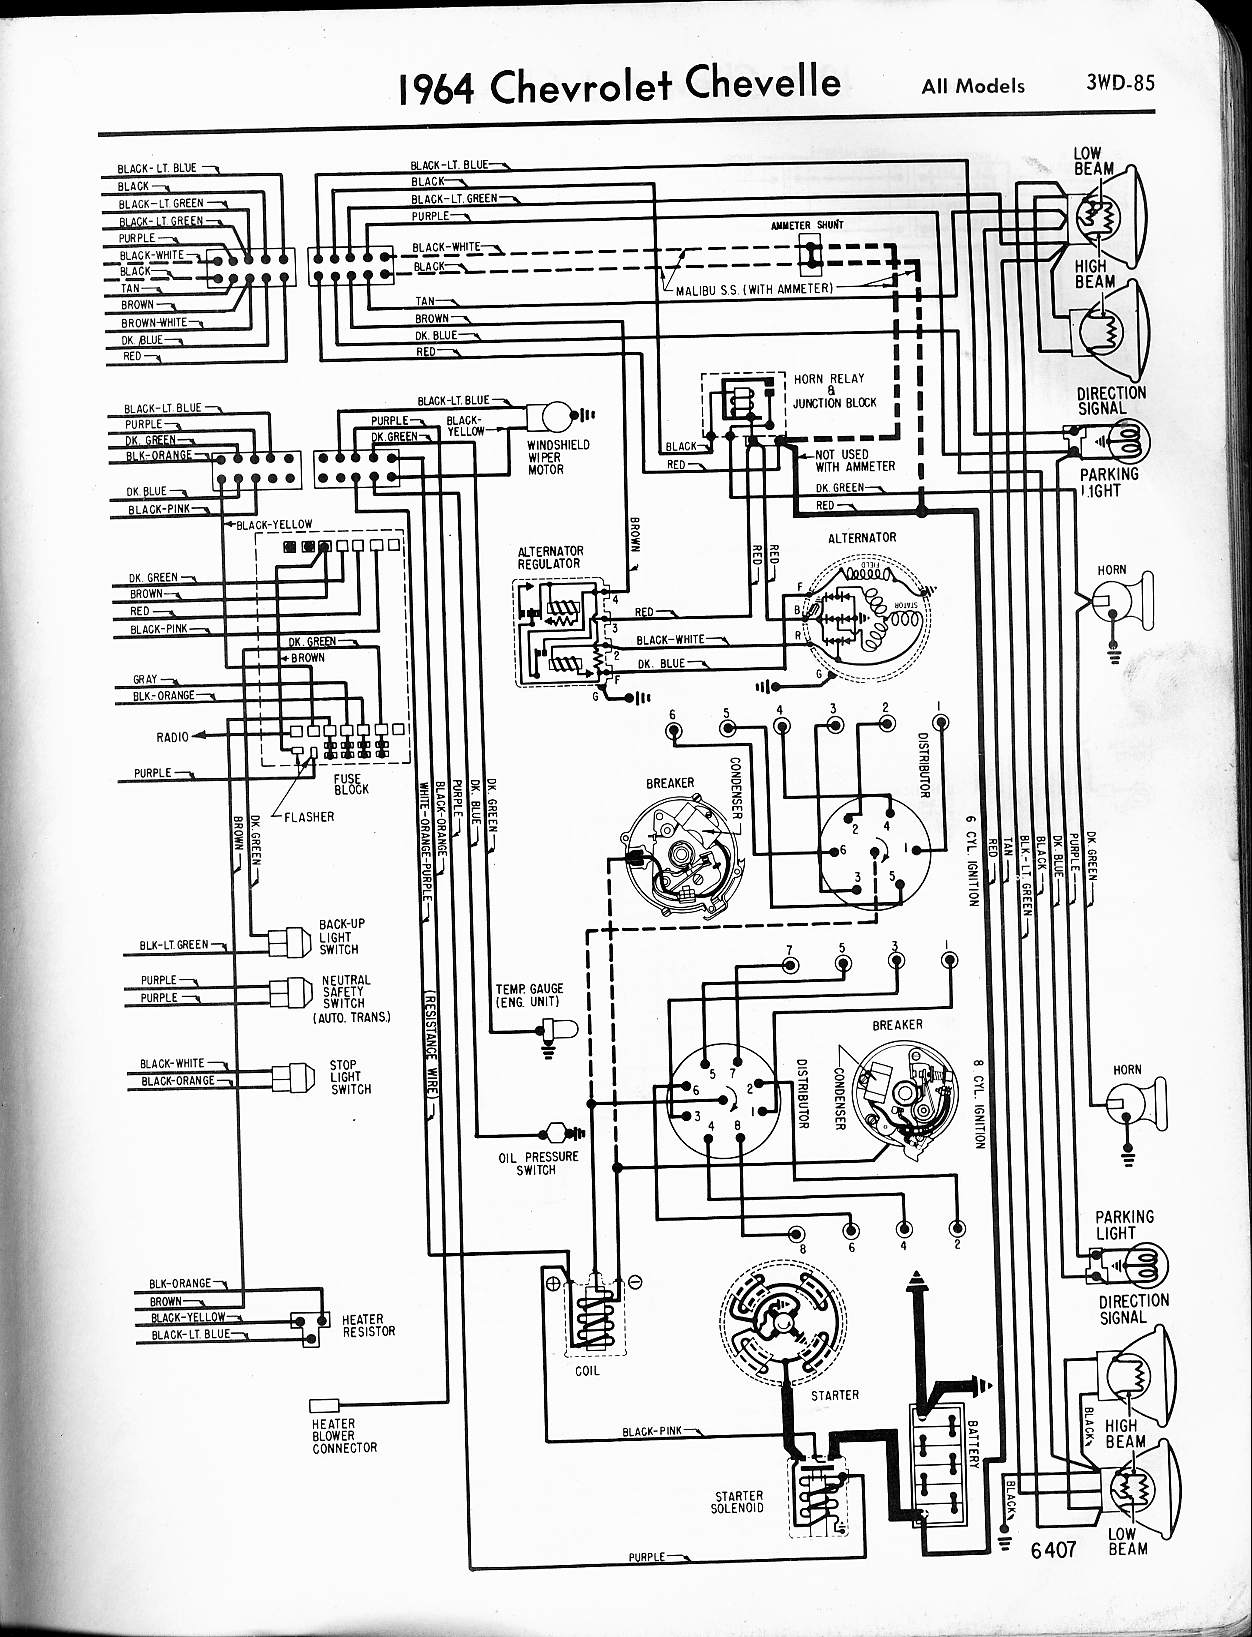 57 Bel Air V8 Wiring Diagrams - Gota Wiring Diagram •gota wiring diagram